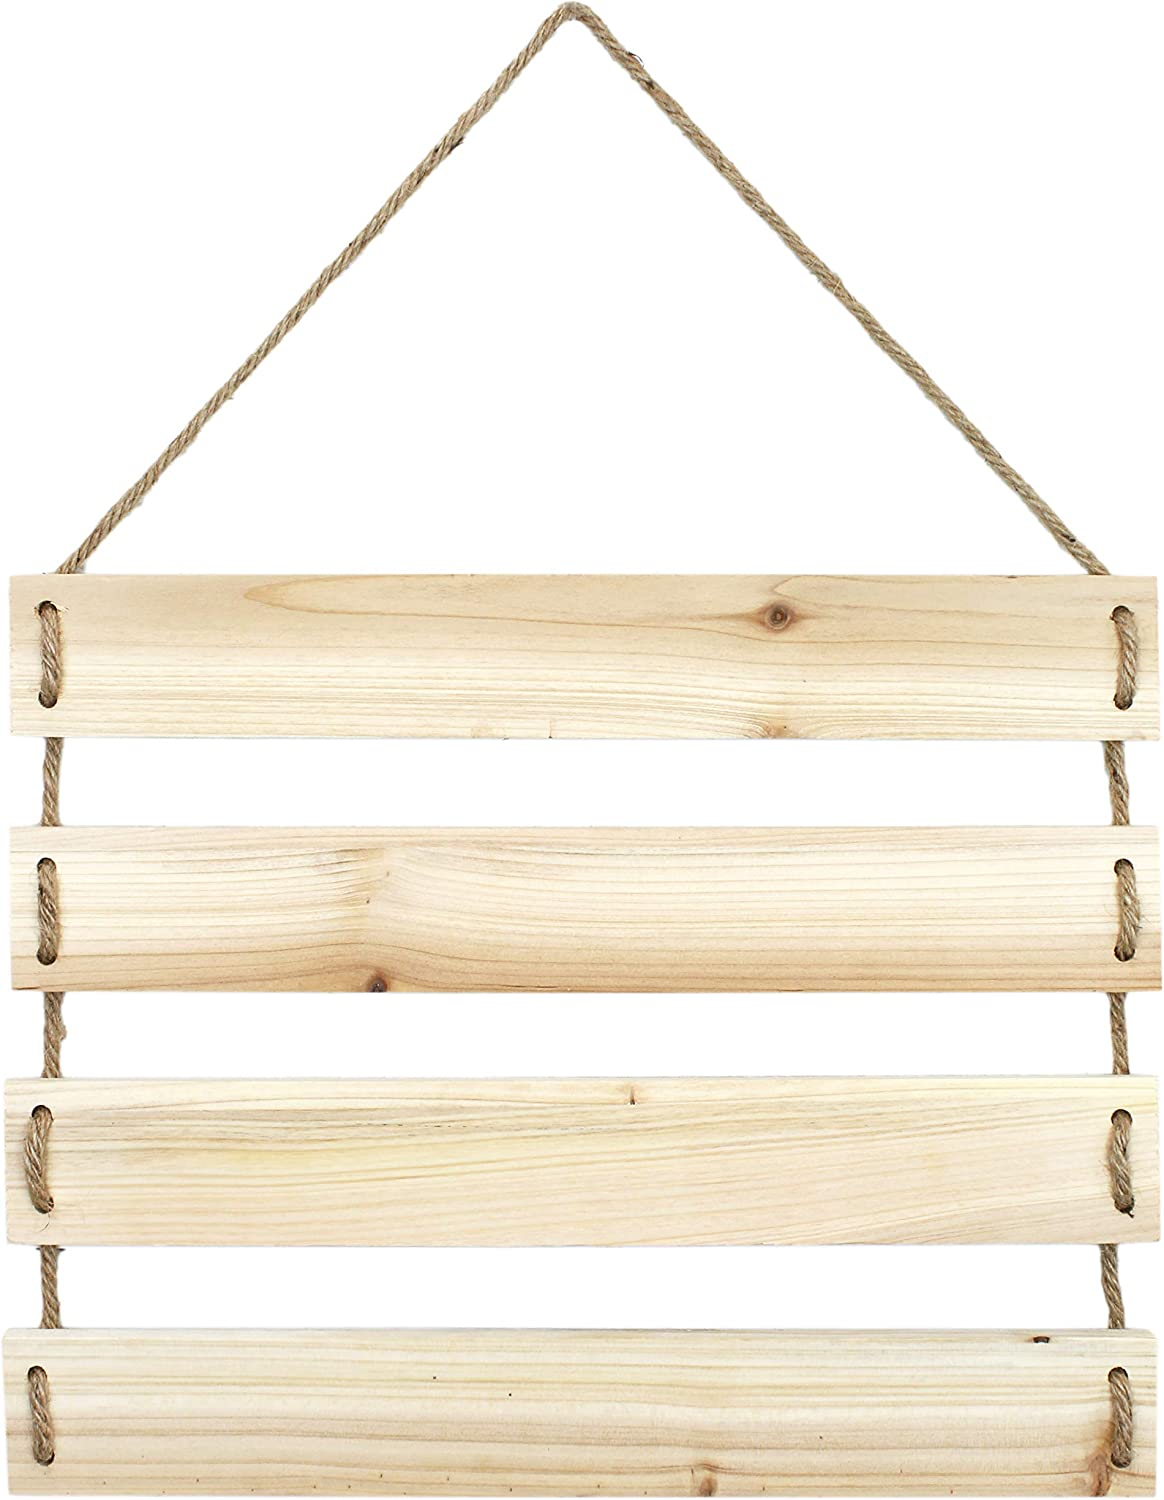 Darware Hanging Rope Plank Sign (Unfinished Natural Wood); Blank Plaque for Rustic Wall Decor